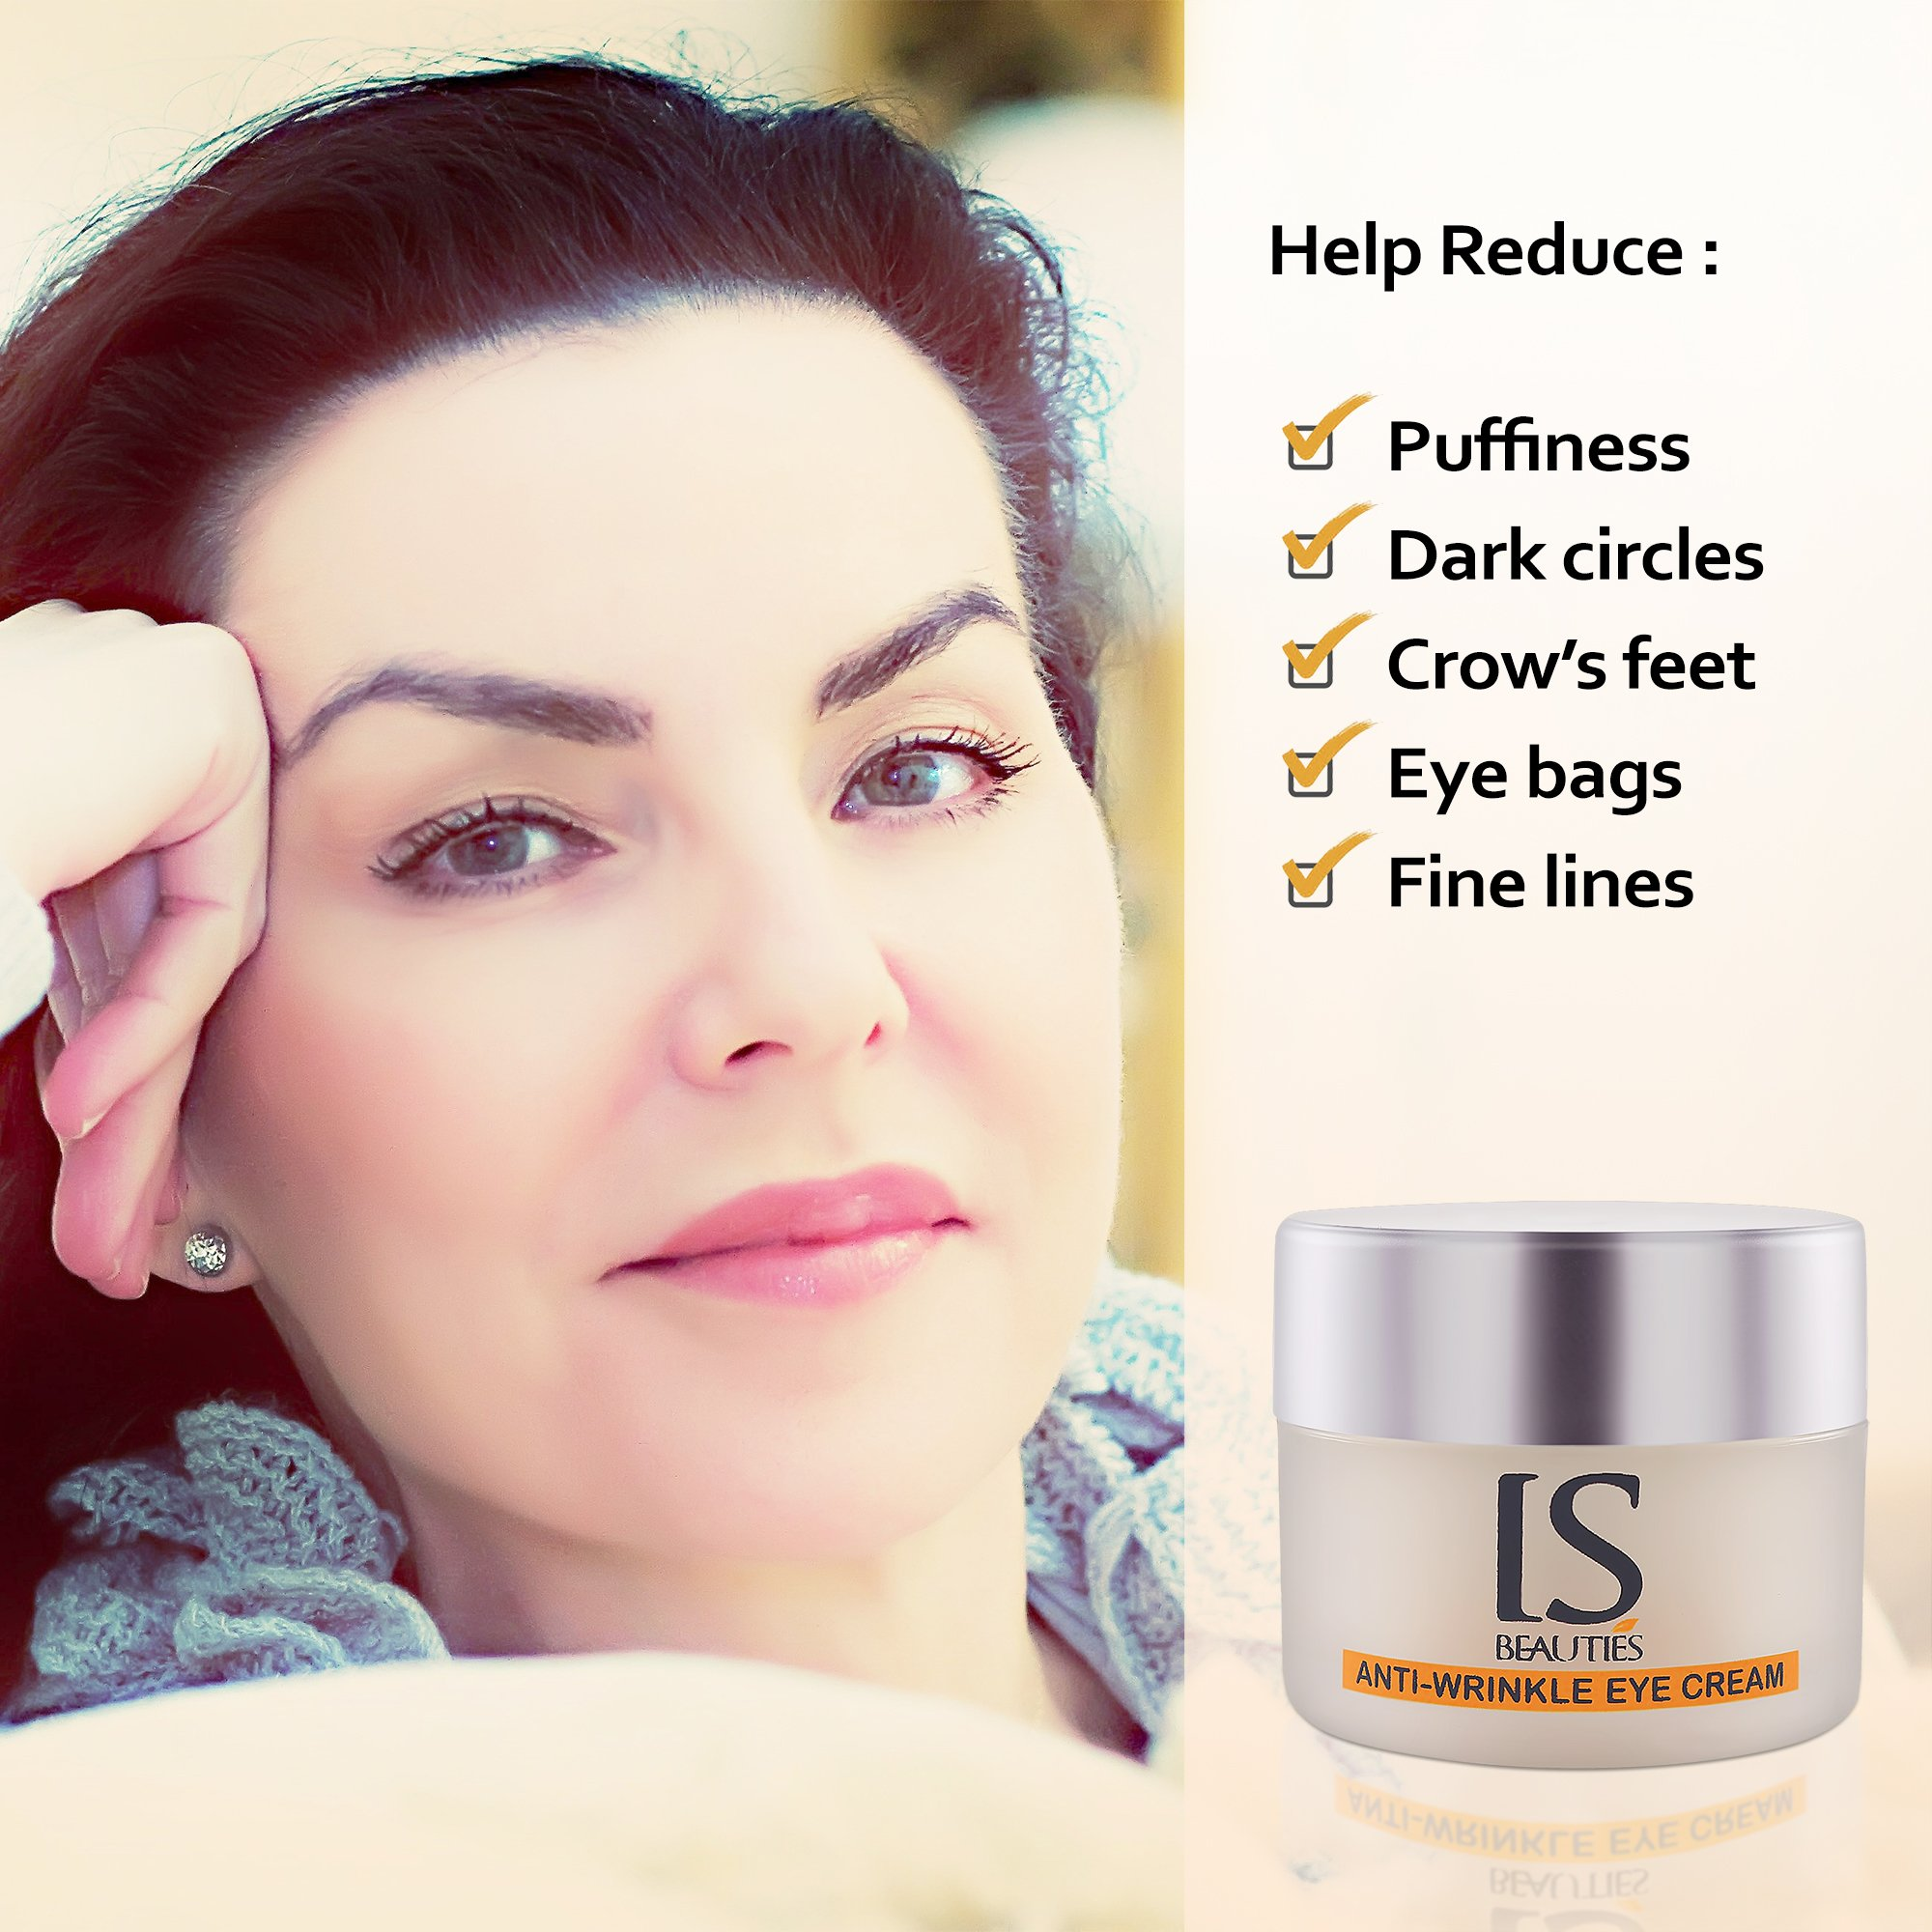 IS Beauties Eye Cream - Anti Aging and Wrinkles with Diamond Powder for Bags and Dark Circles and Puffiness - Hydrate and Moisturize the Skin of Eyes Area - Collagen Production and Reversing UV Damage